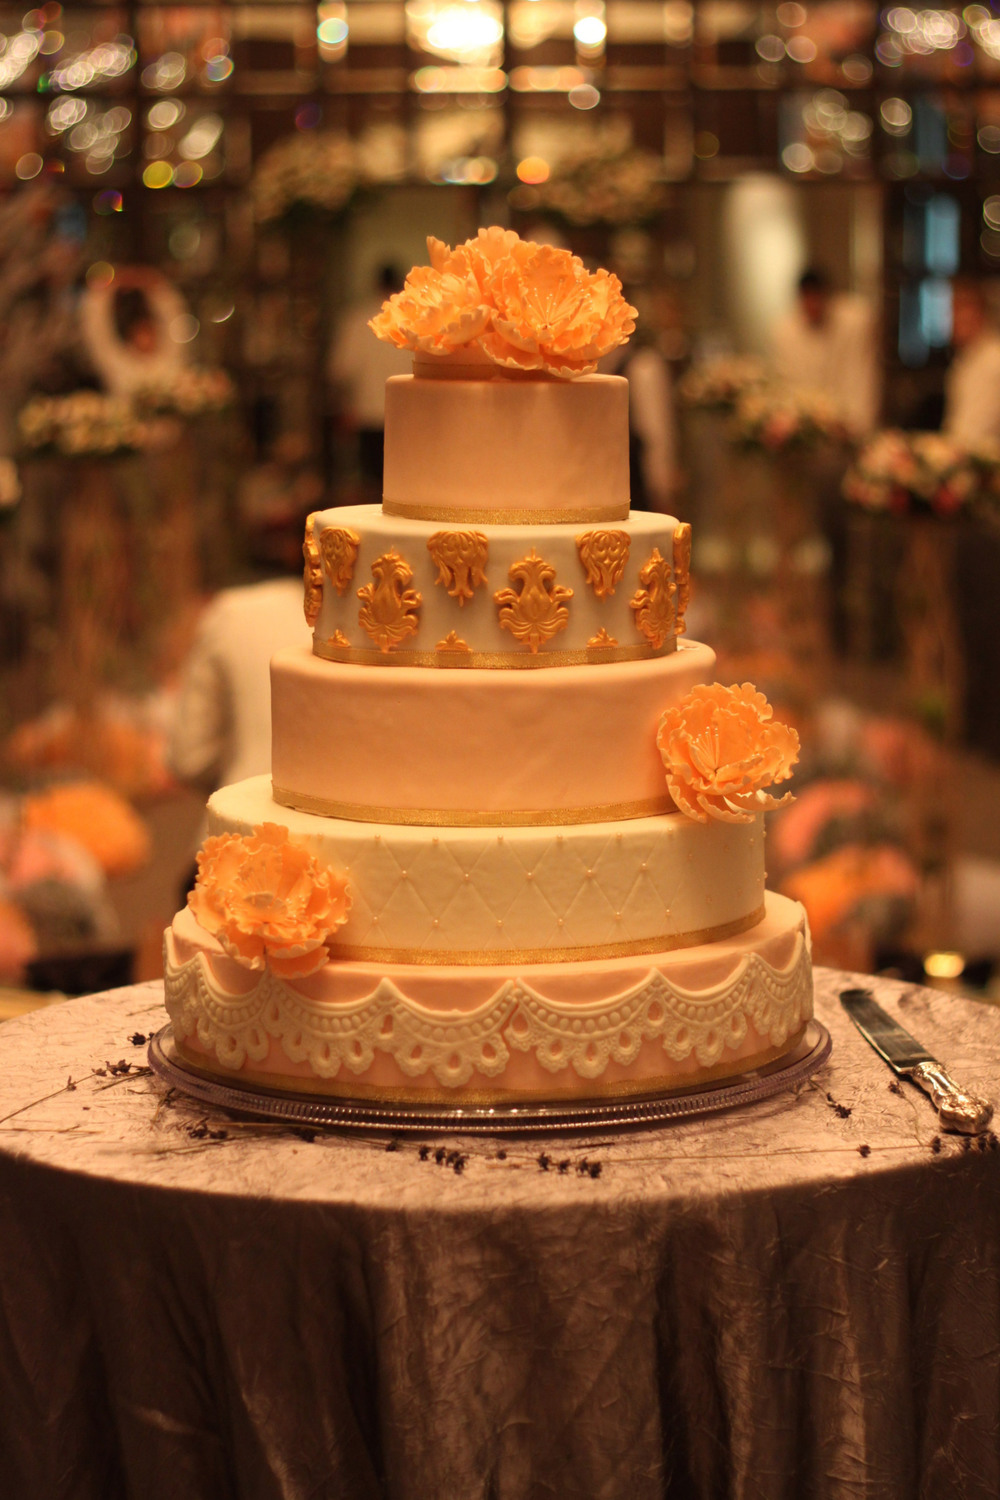 2014. My first 5 tier wedding cake I did for Helen & Paul and the last cake I did before my internship.